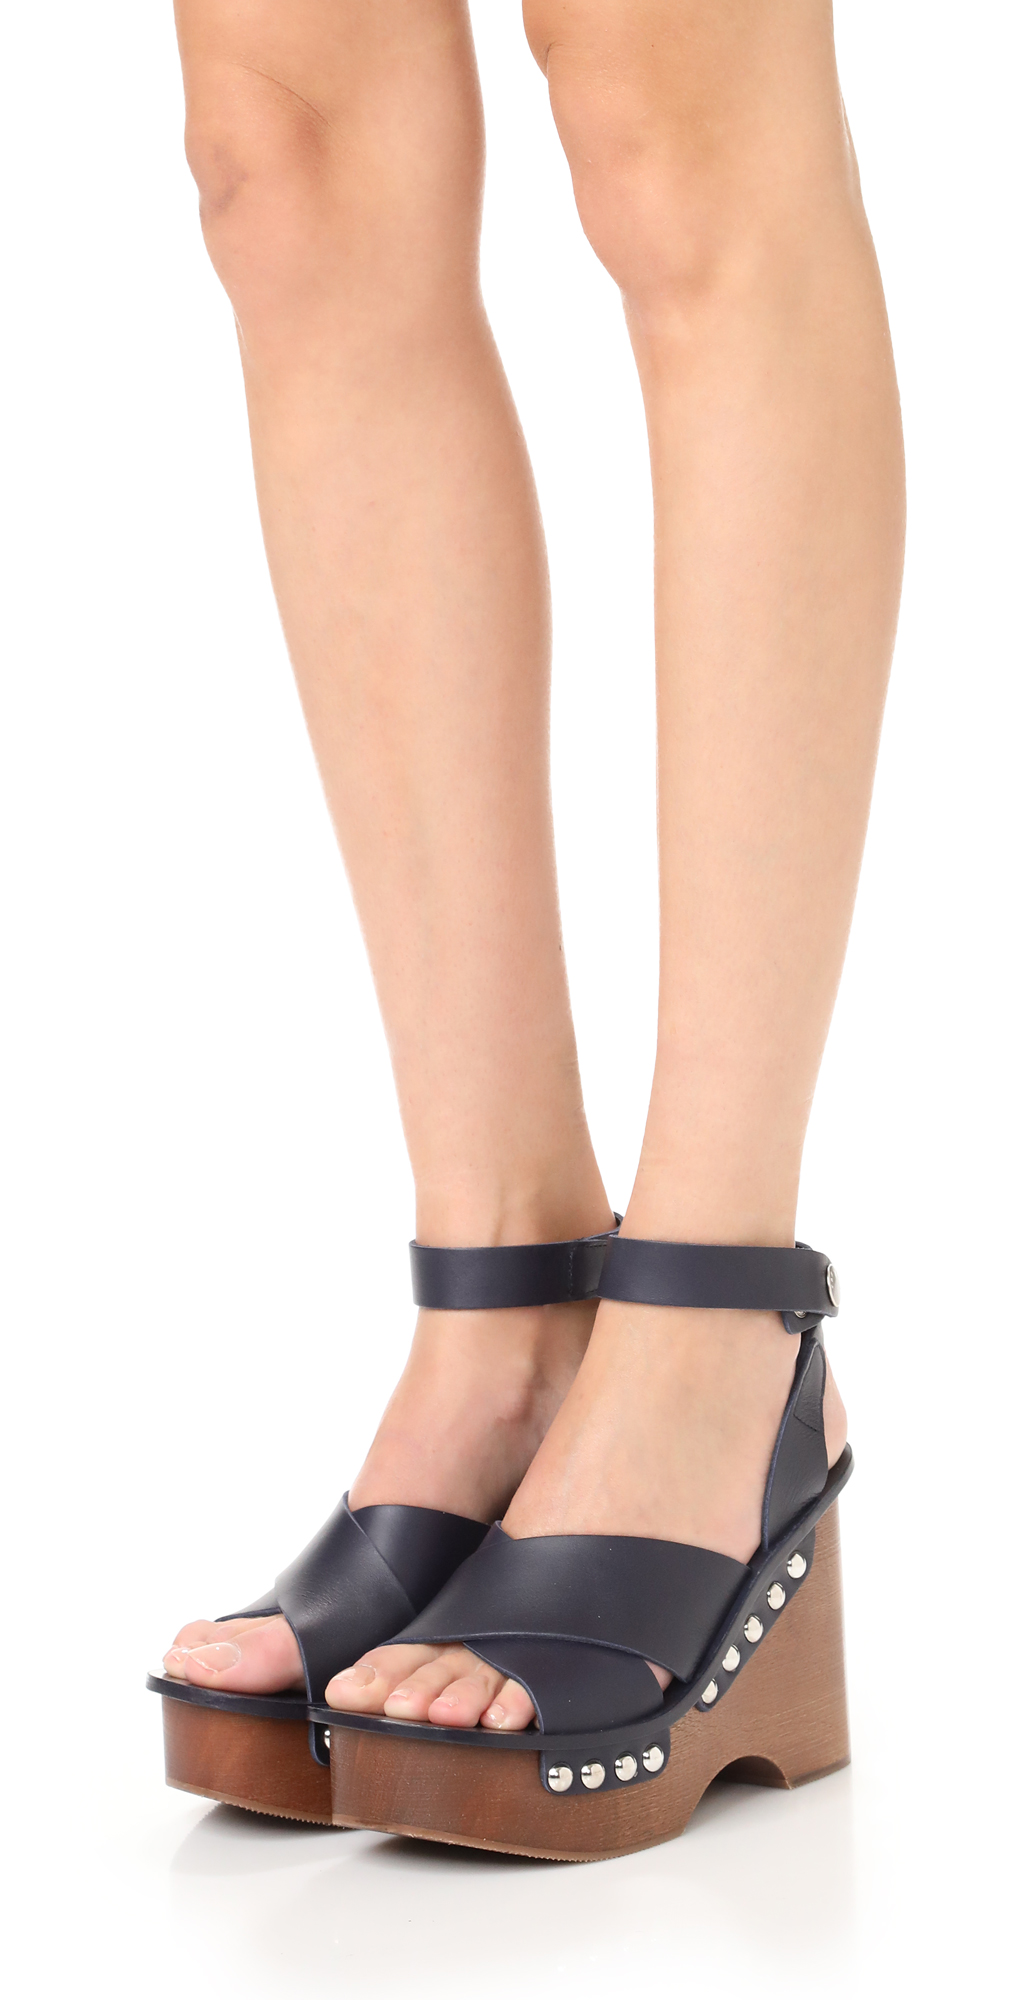 db342a44bed Rag   Bone Hester Platform Sandals